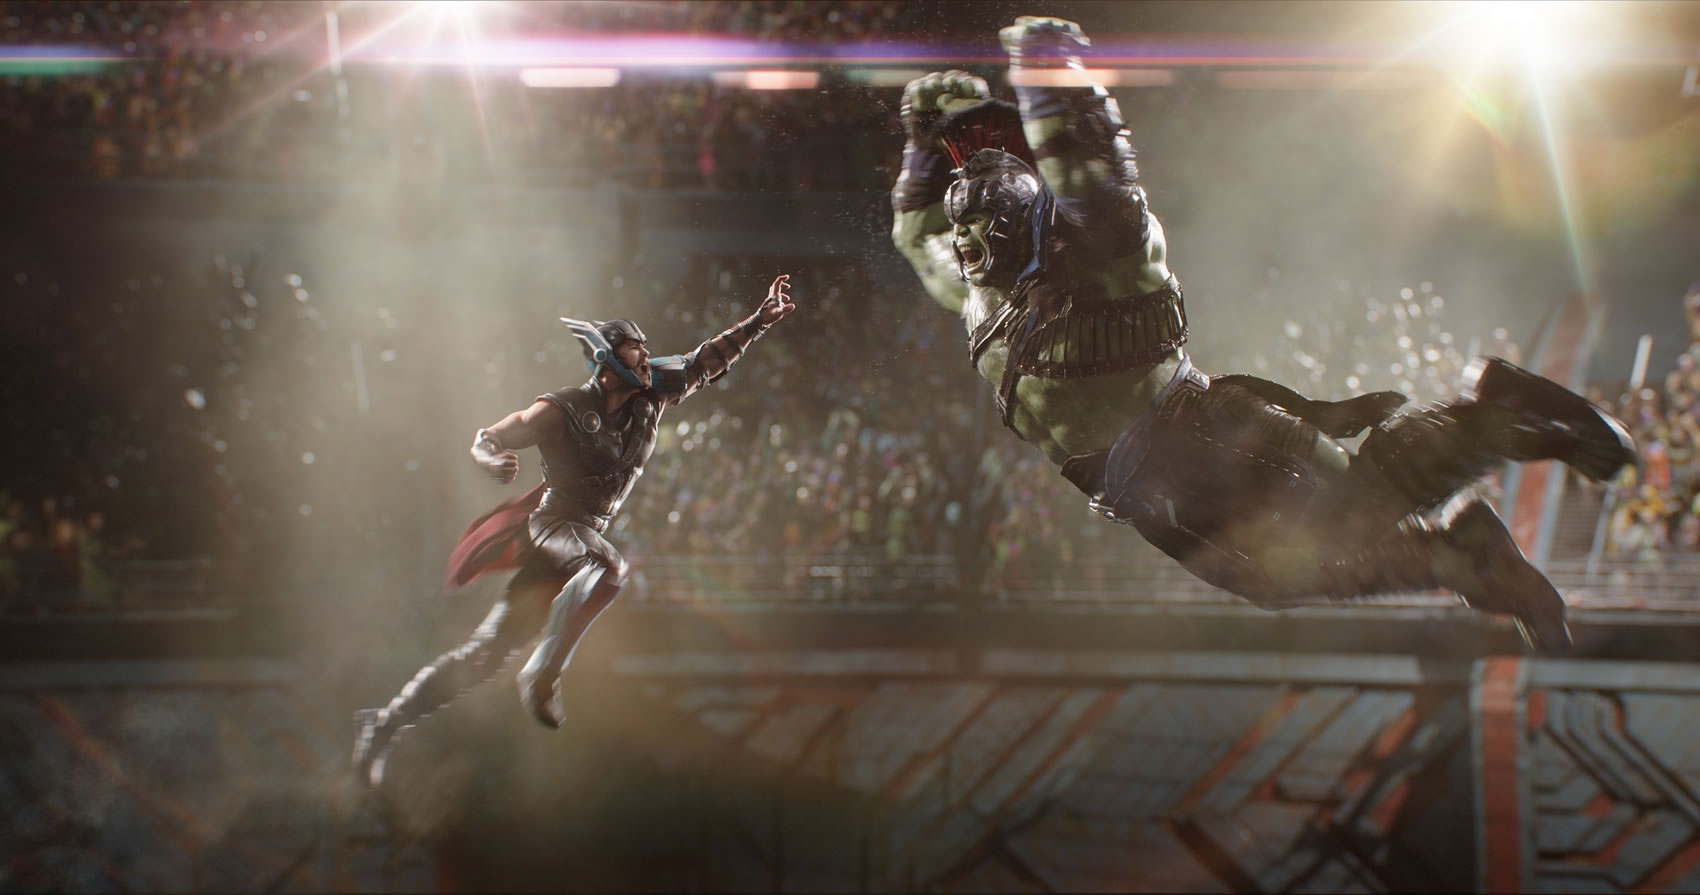 2017 Year in Review - Marvel Studios Thor: Ragnarok..L to R: Thor (Chris Hemsworth) and Hulk (Mark Ruffalo)..Photo: Film Frame..©Marvel Studios 2017